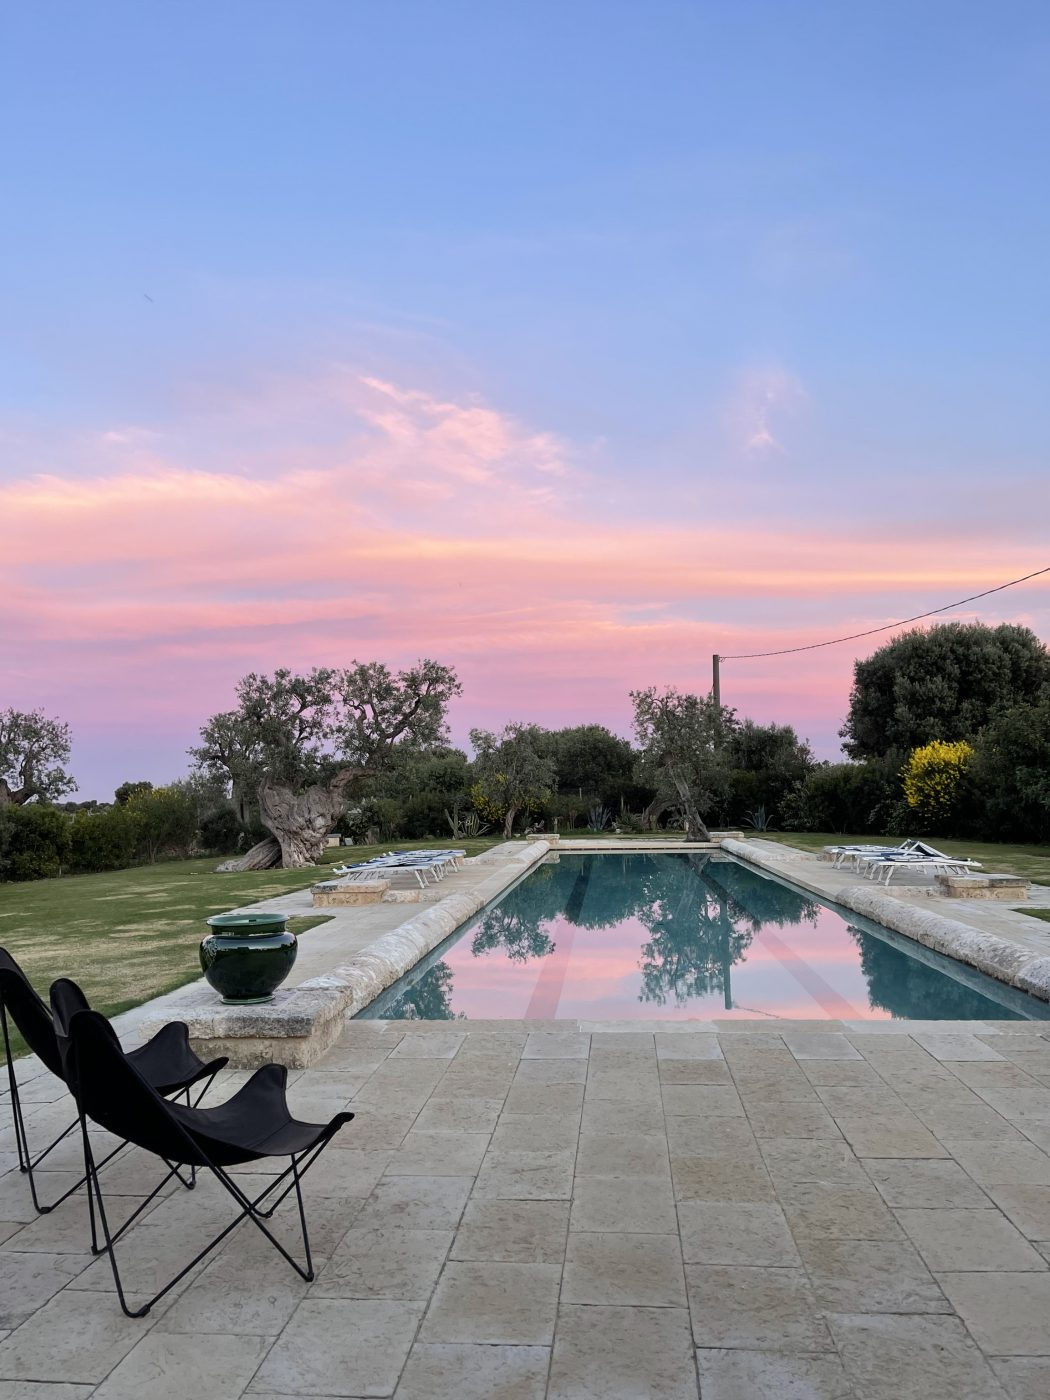 Masseria Schiuma THE 5: THE PUGLIA WE ARE OBSESSED WITH THIS MONTH